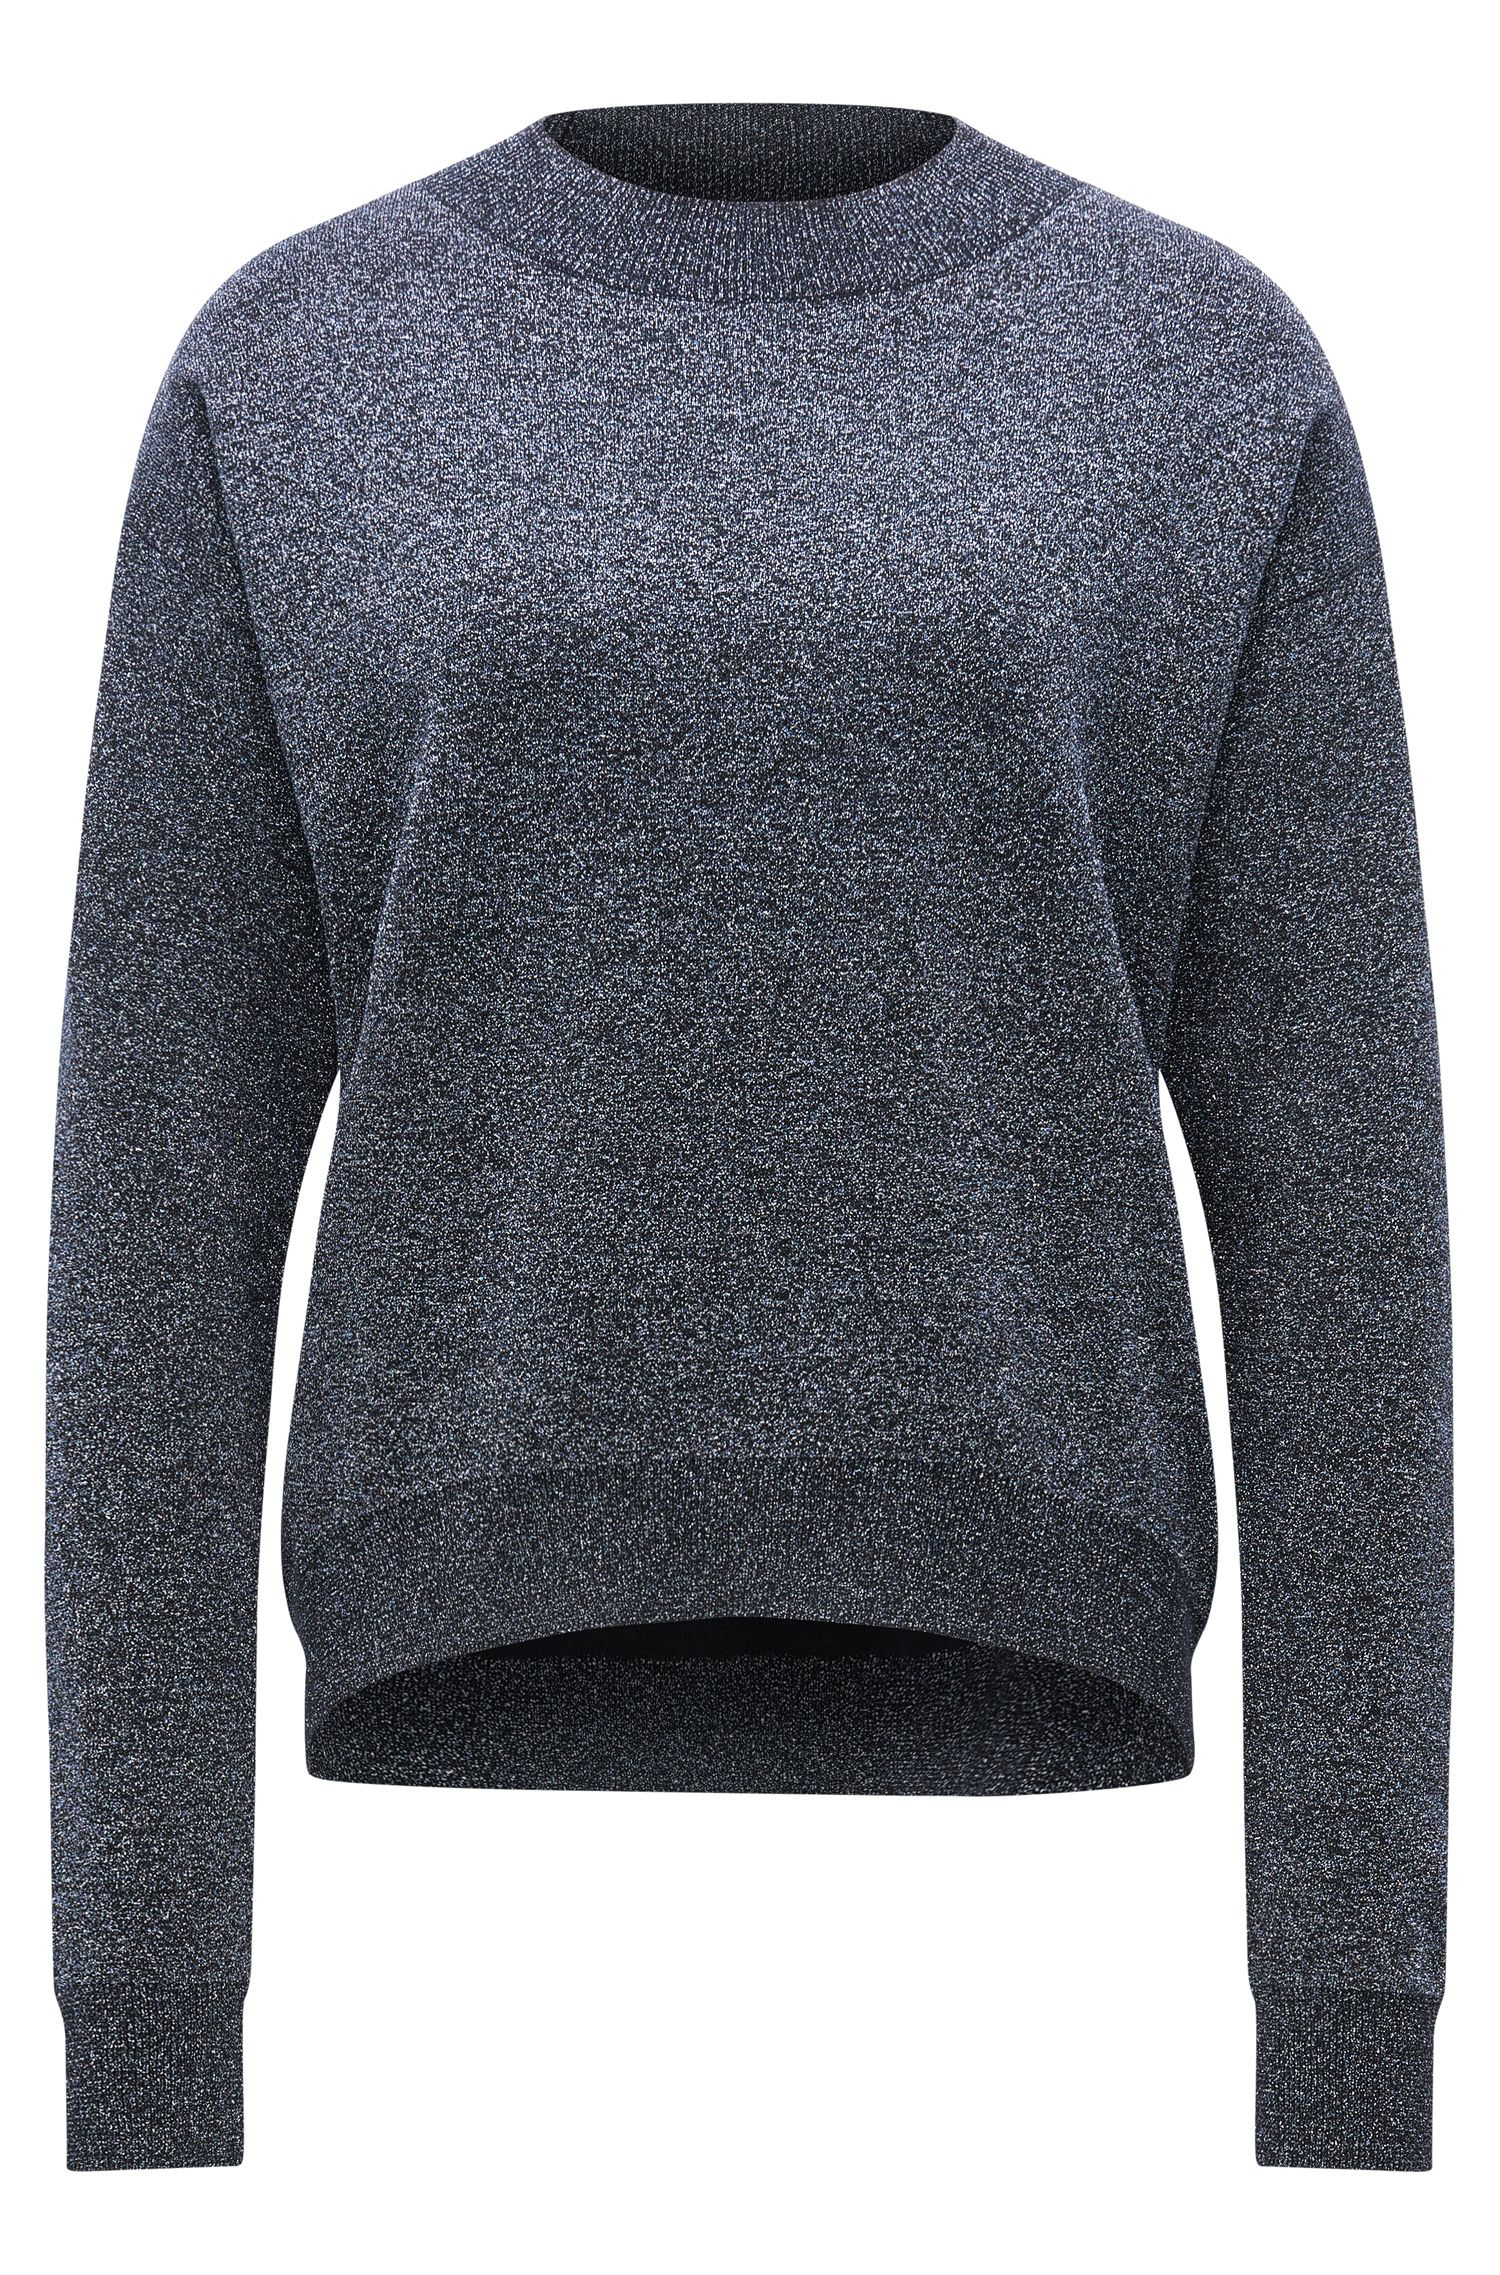 Matallicized Virgin Wool Sweater | Funday